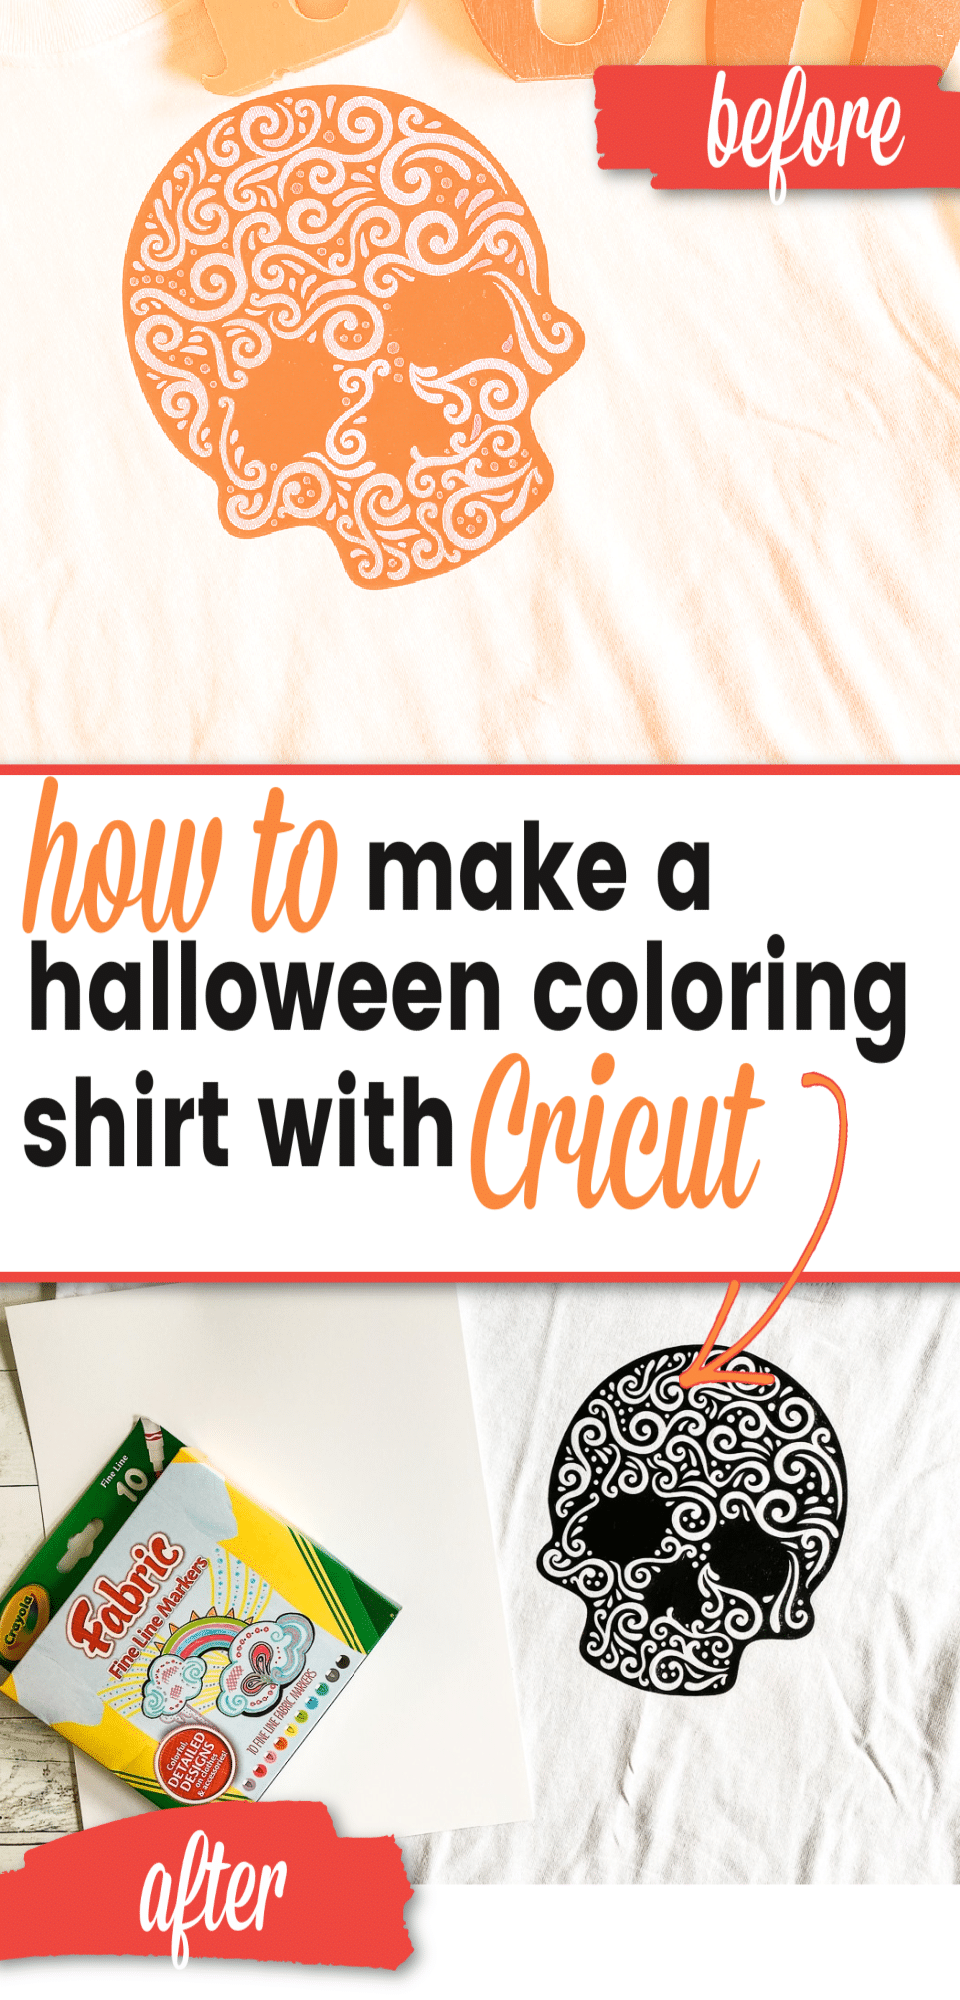 Fun and festive DIY Halloween Shirt with Cricut - it is such a fun color your own shirt. This fun skull shirt is so easy to do and is something all ages can enjoy. via @clarkscondensed